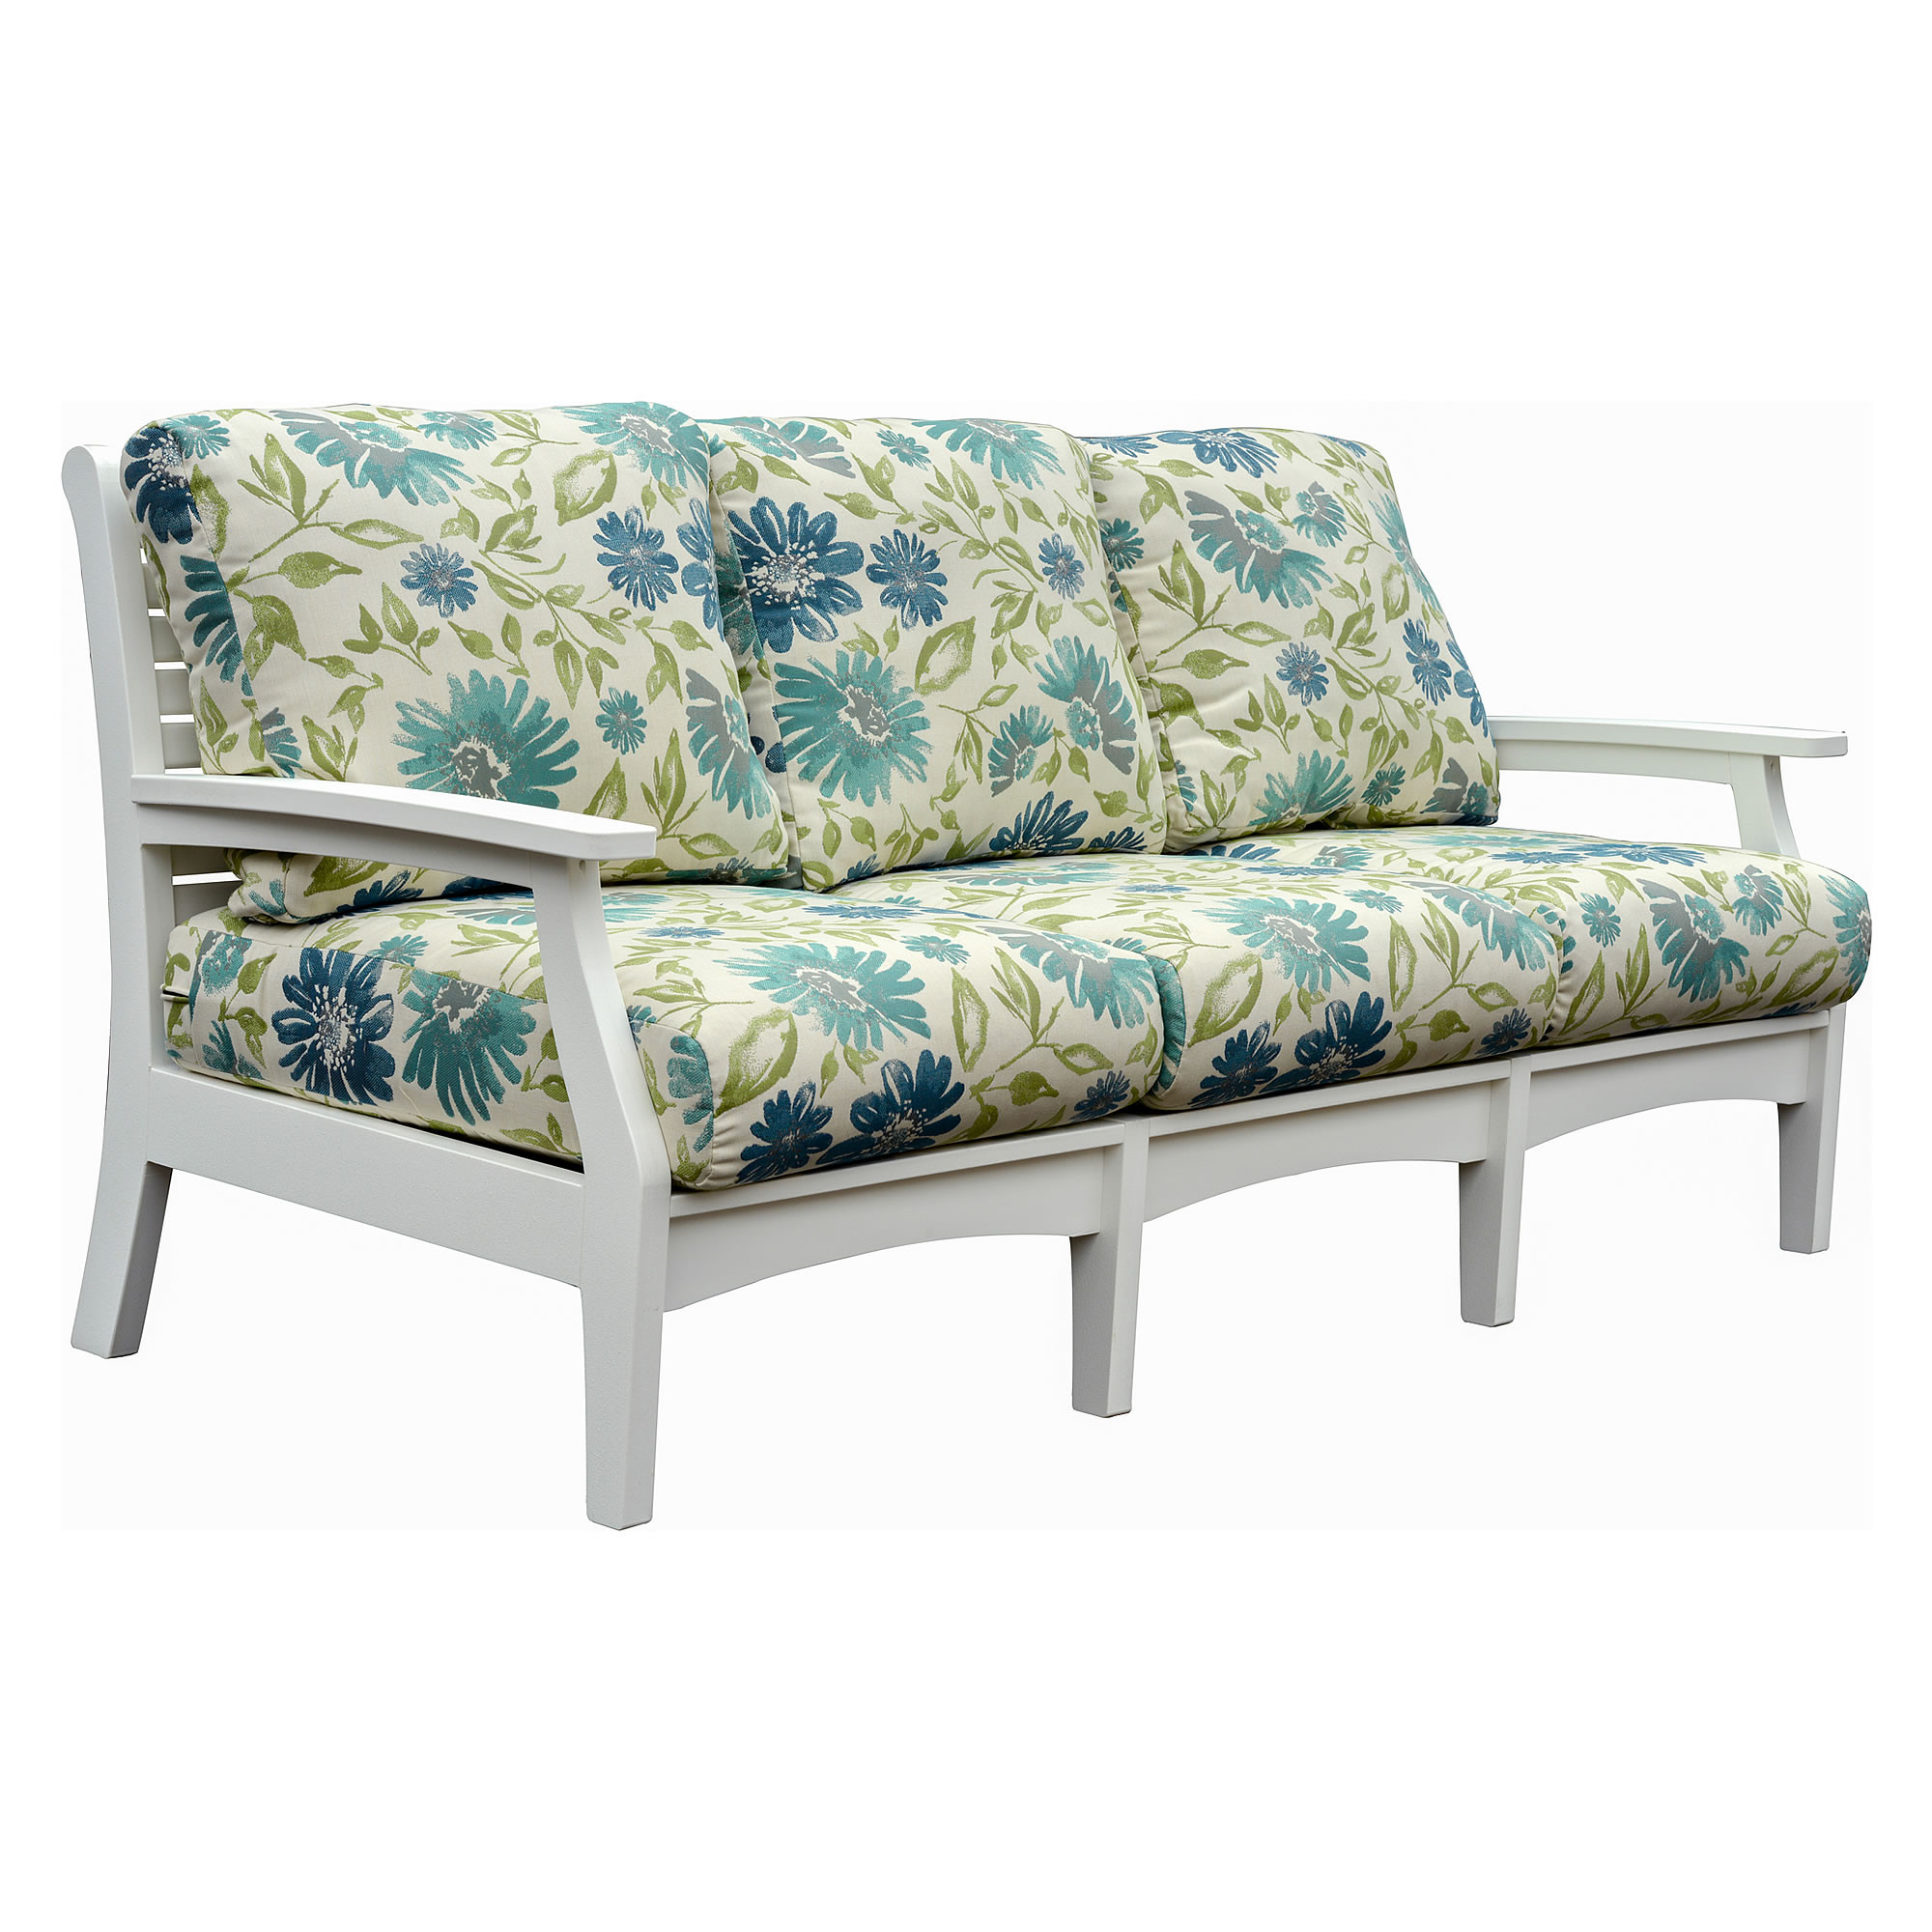 Futon World Berlin Berlin Gardens Classic Terrace Sofa